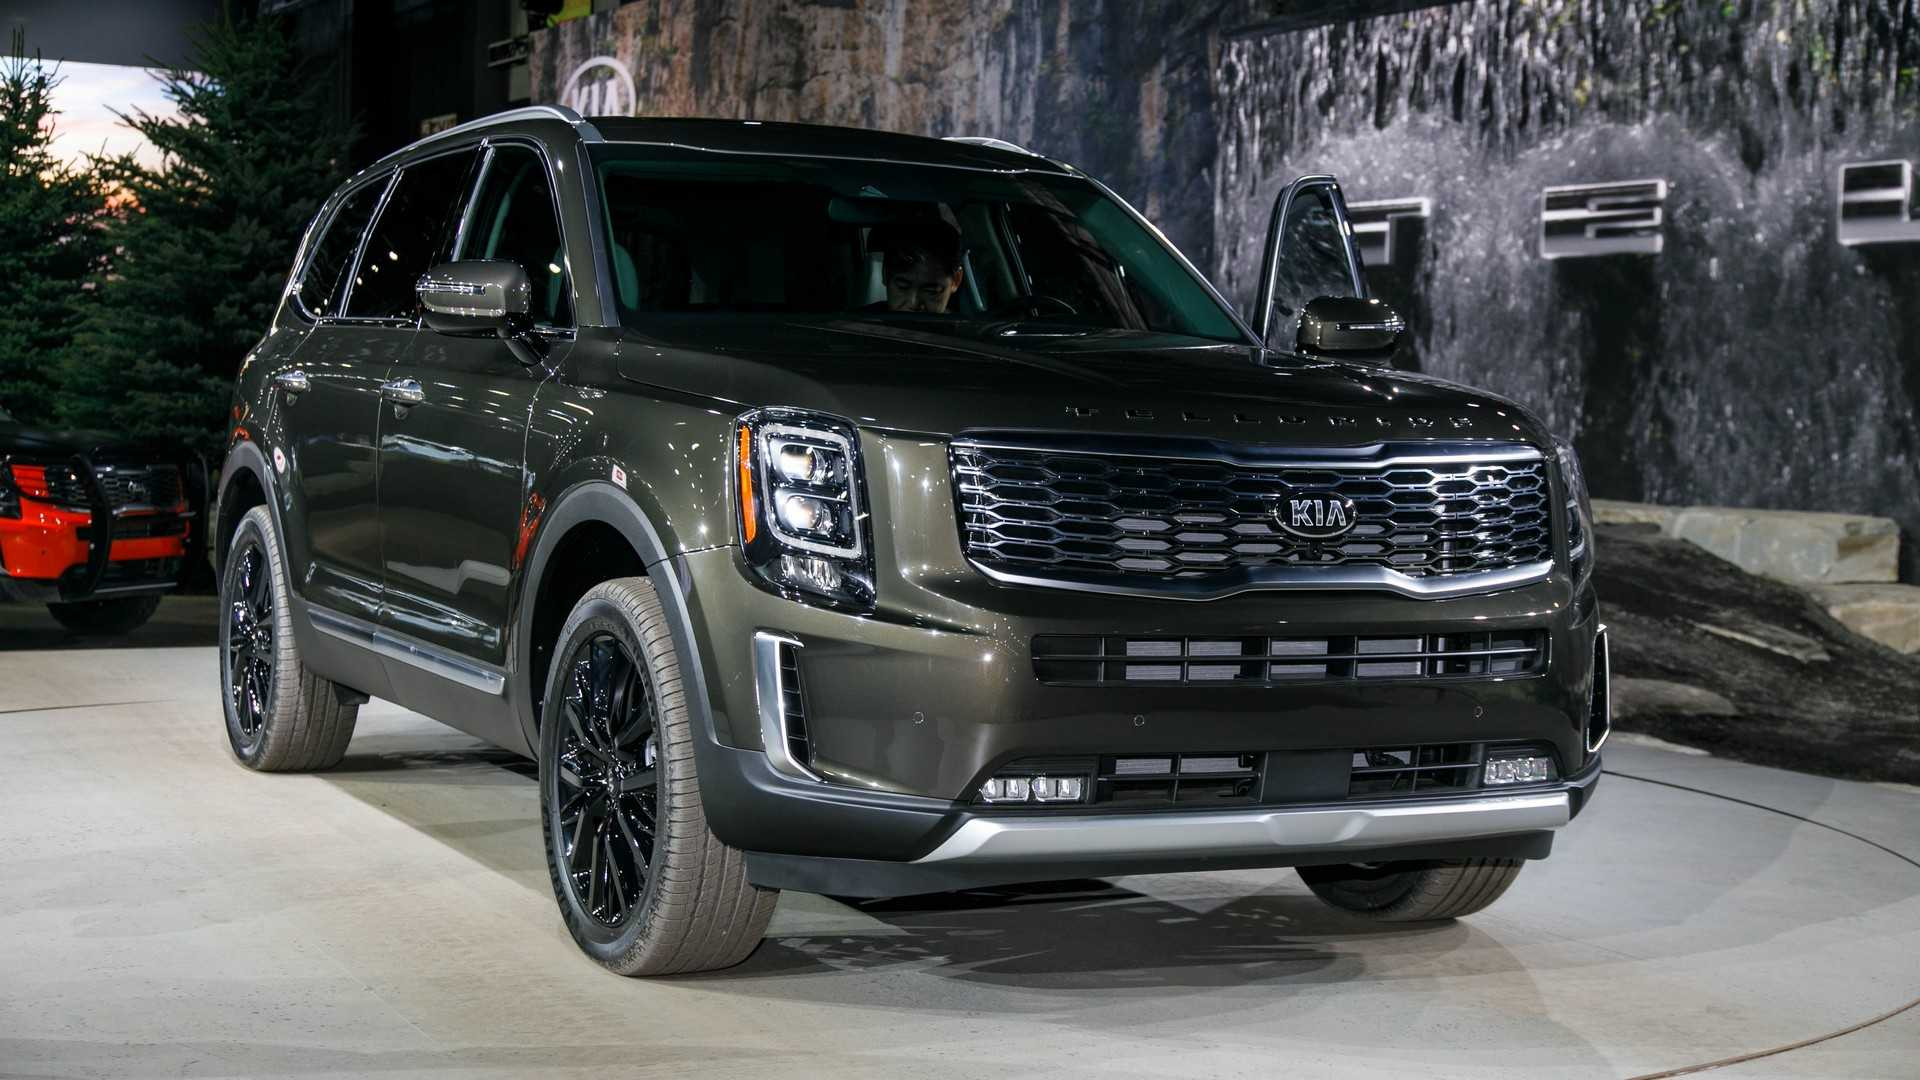 free download 95 gallery of kia 2020 telluride exterior and interior by kia 2020 1920x1080 for your desktop mobile tablet explore 56 kia telluride wallpapers kia telluride wallpapers telluride background kia wallpapers kia 2020 telluride exterior